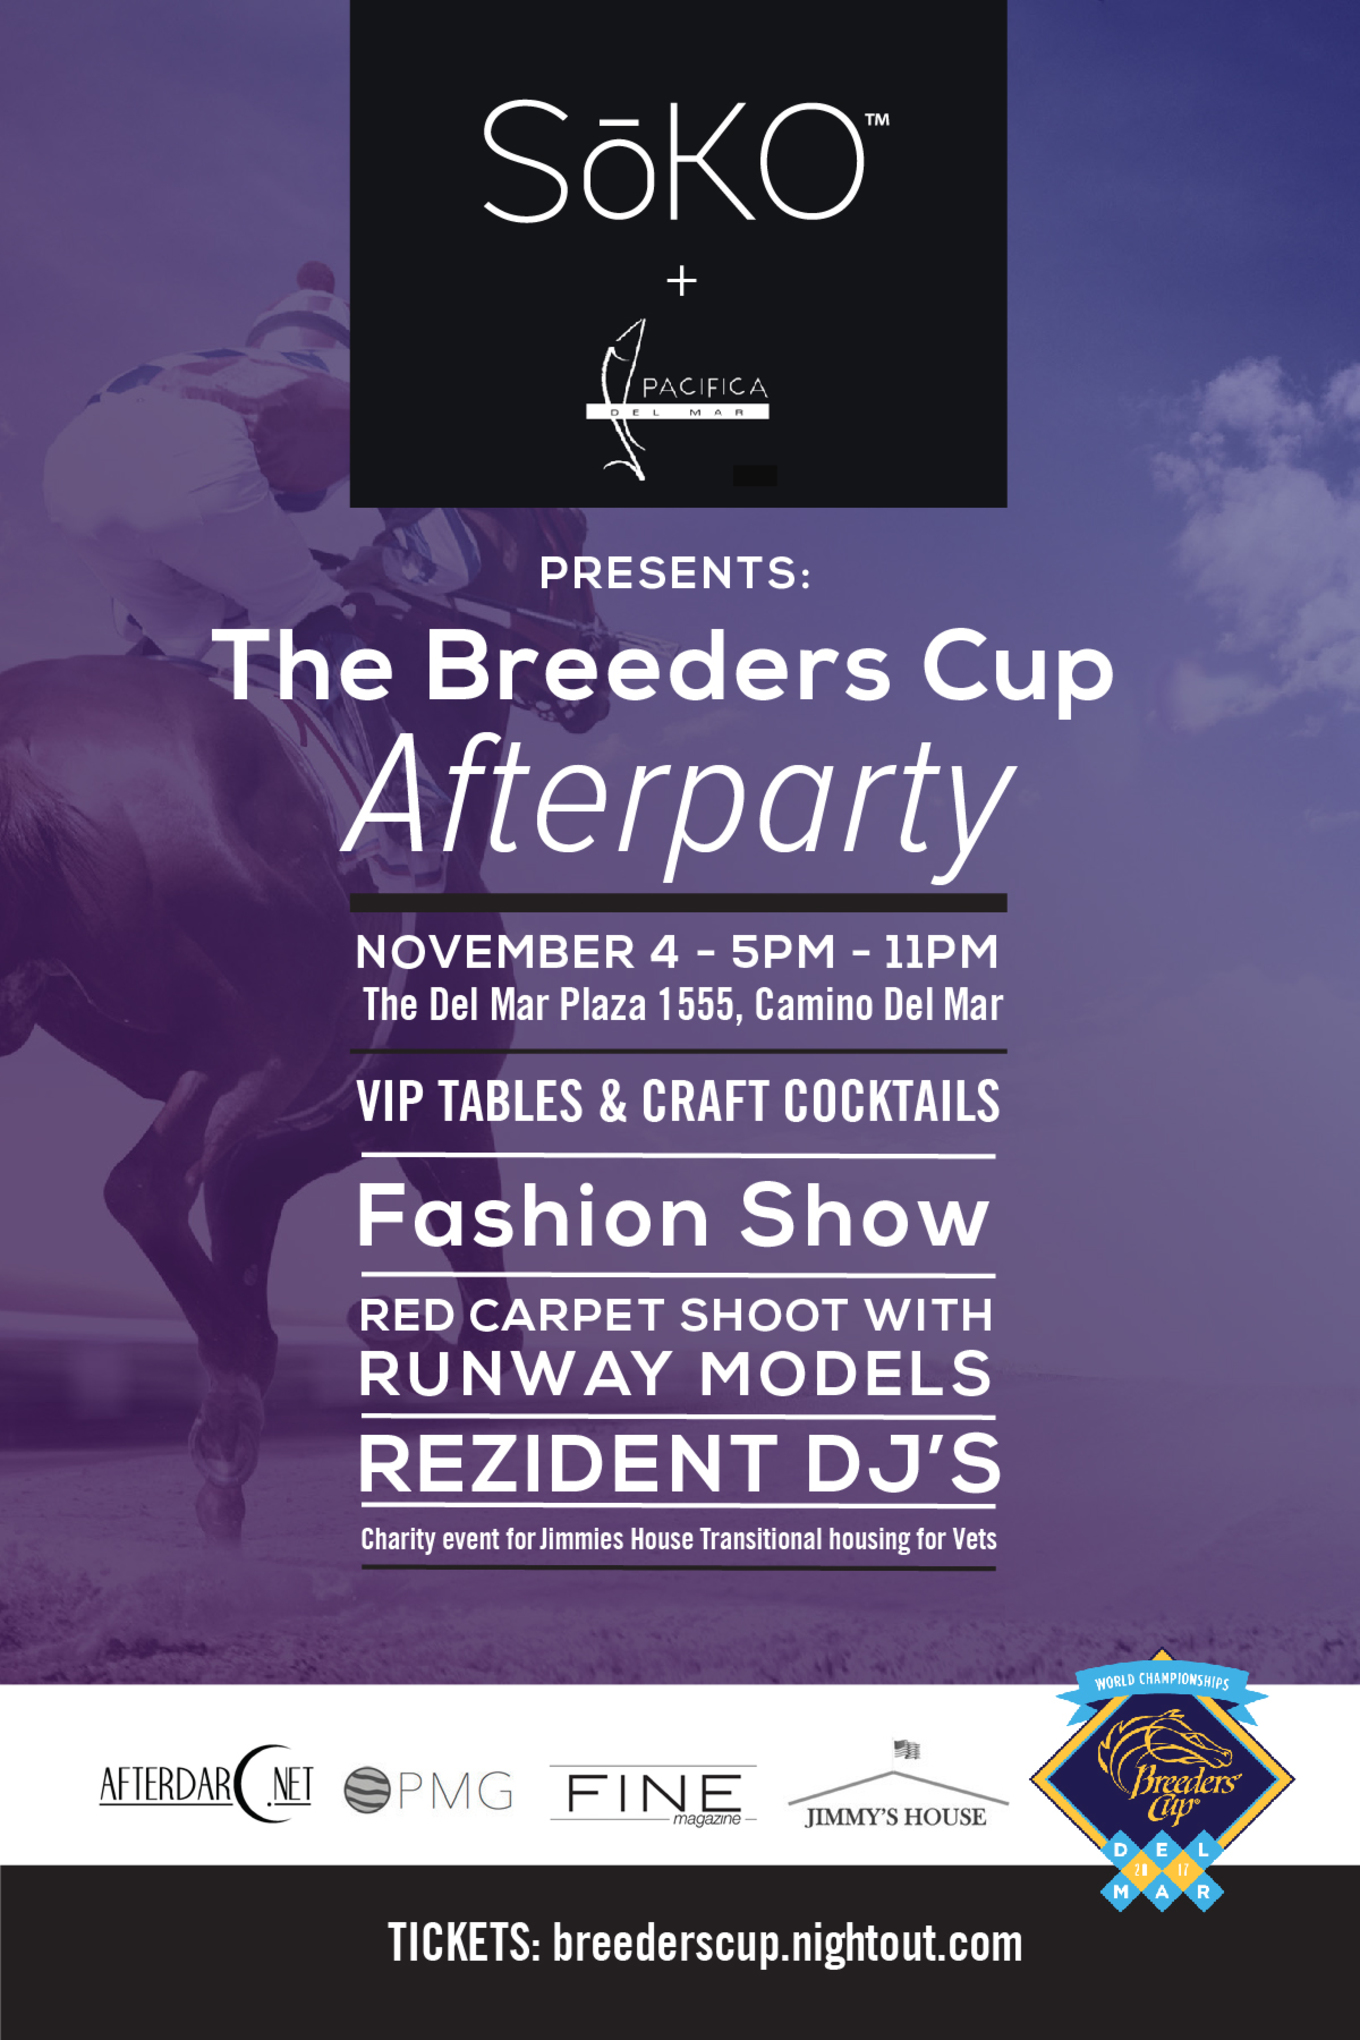 Soko Presents The Breeders Cup Afterparty Tickets